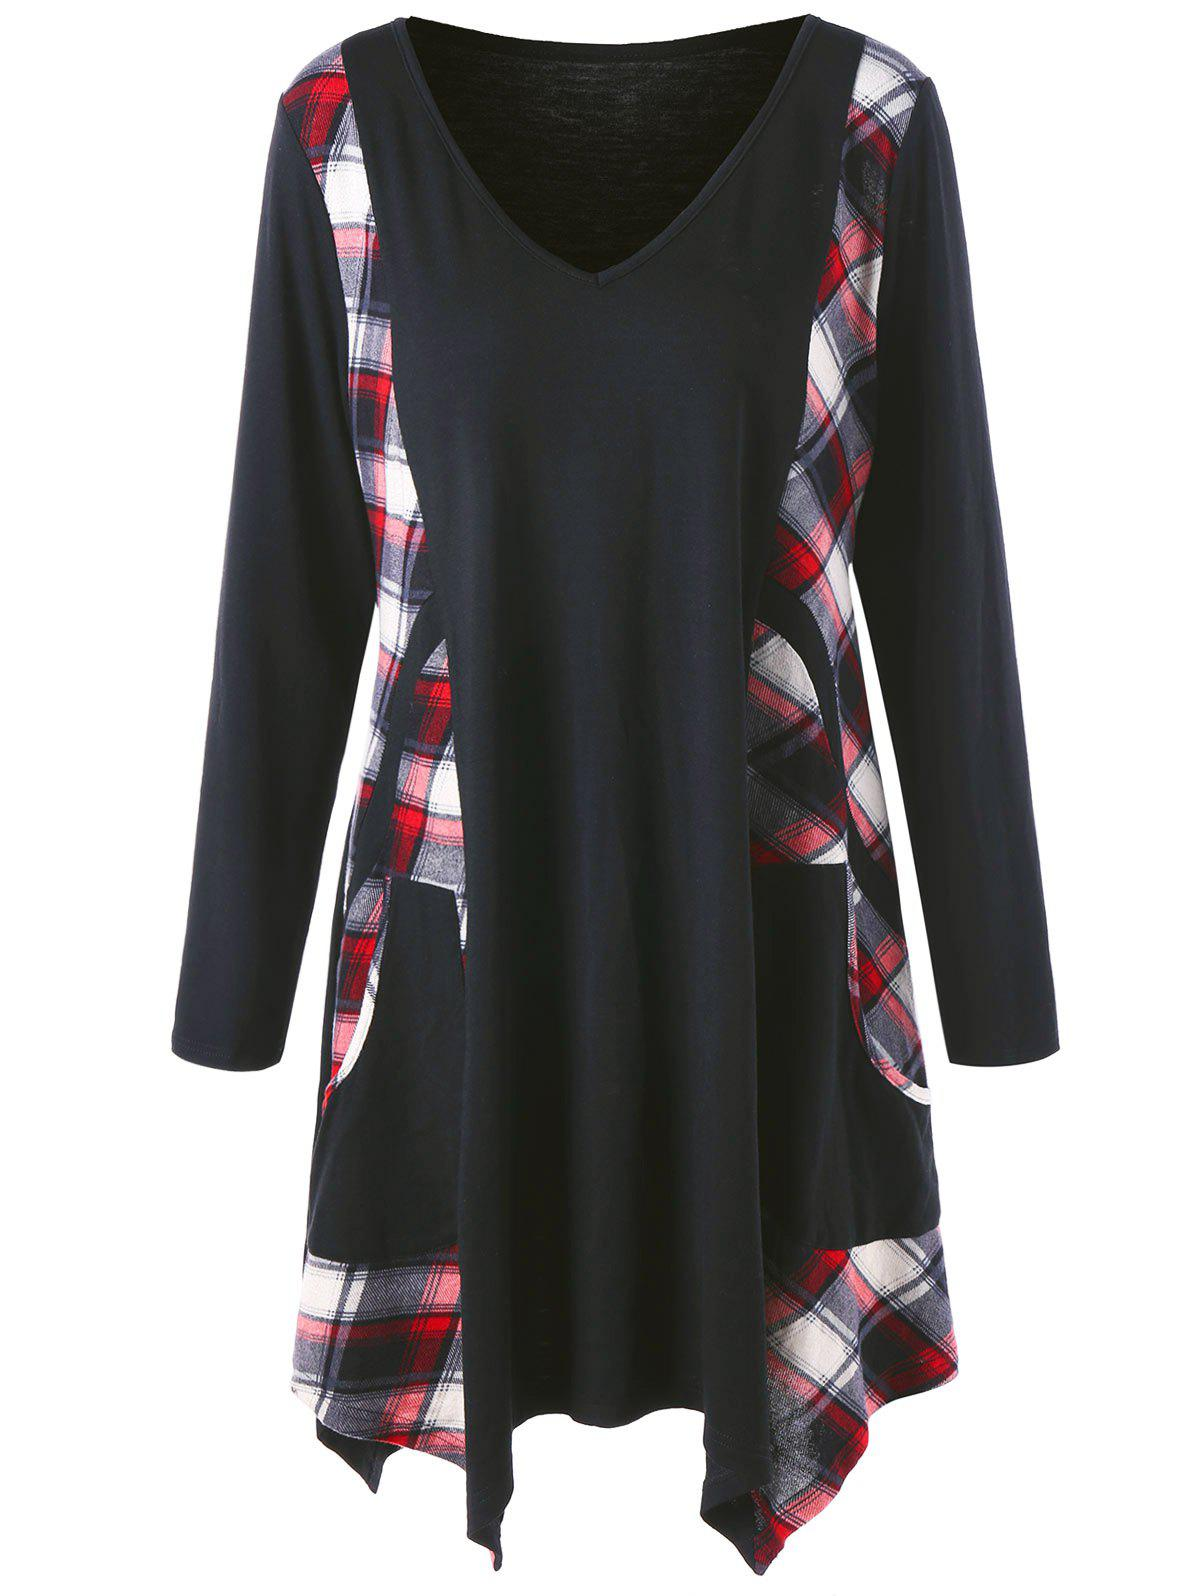 Plus Size Long Checked Panel  Tunic TopWOMEN<br><br>Size: 5XL; Color: BLACK; Material: Cotton Blends,Polyester; Shirt Length: Long; Sleeve Length: Full; Collar: V-Neck; Style: Casual; Season: Fall,Winter; Embellishment: Spliced; Pattern Type: Plaid; Weight: 0.3800kg; Package Contents: 1 x Top;